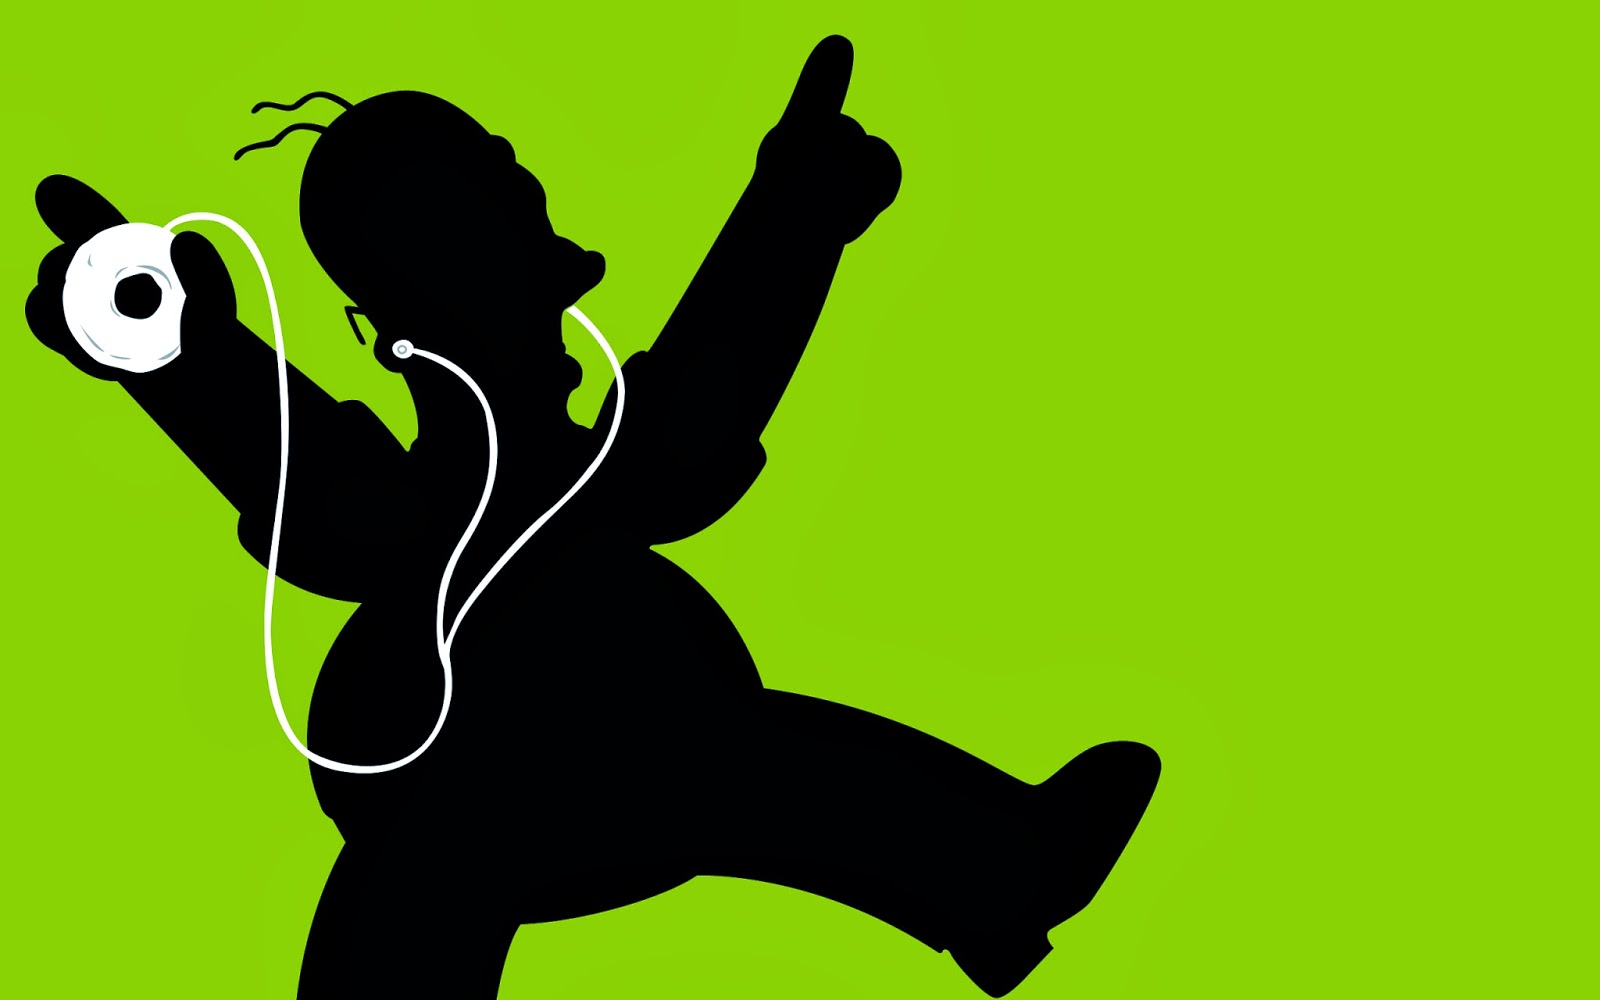 Spotirama the ipod playlist songs from old apple ipod ads info if ipod has been the symbol of digital music revolution the ipod commercials have been a kind of visual soundtracks of the last decade biocorpaavc